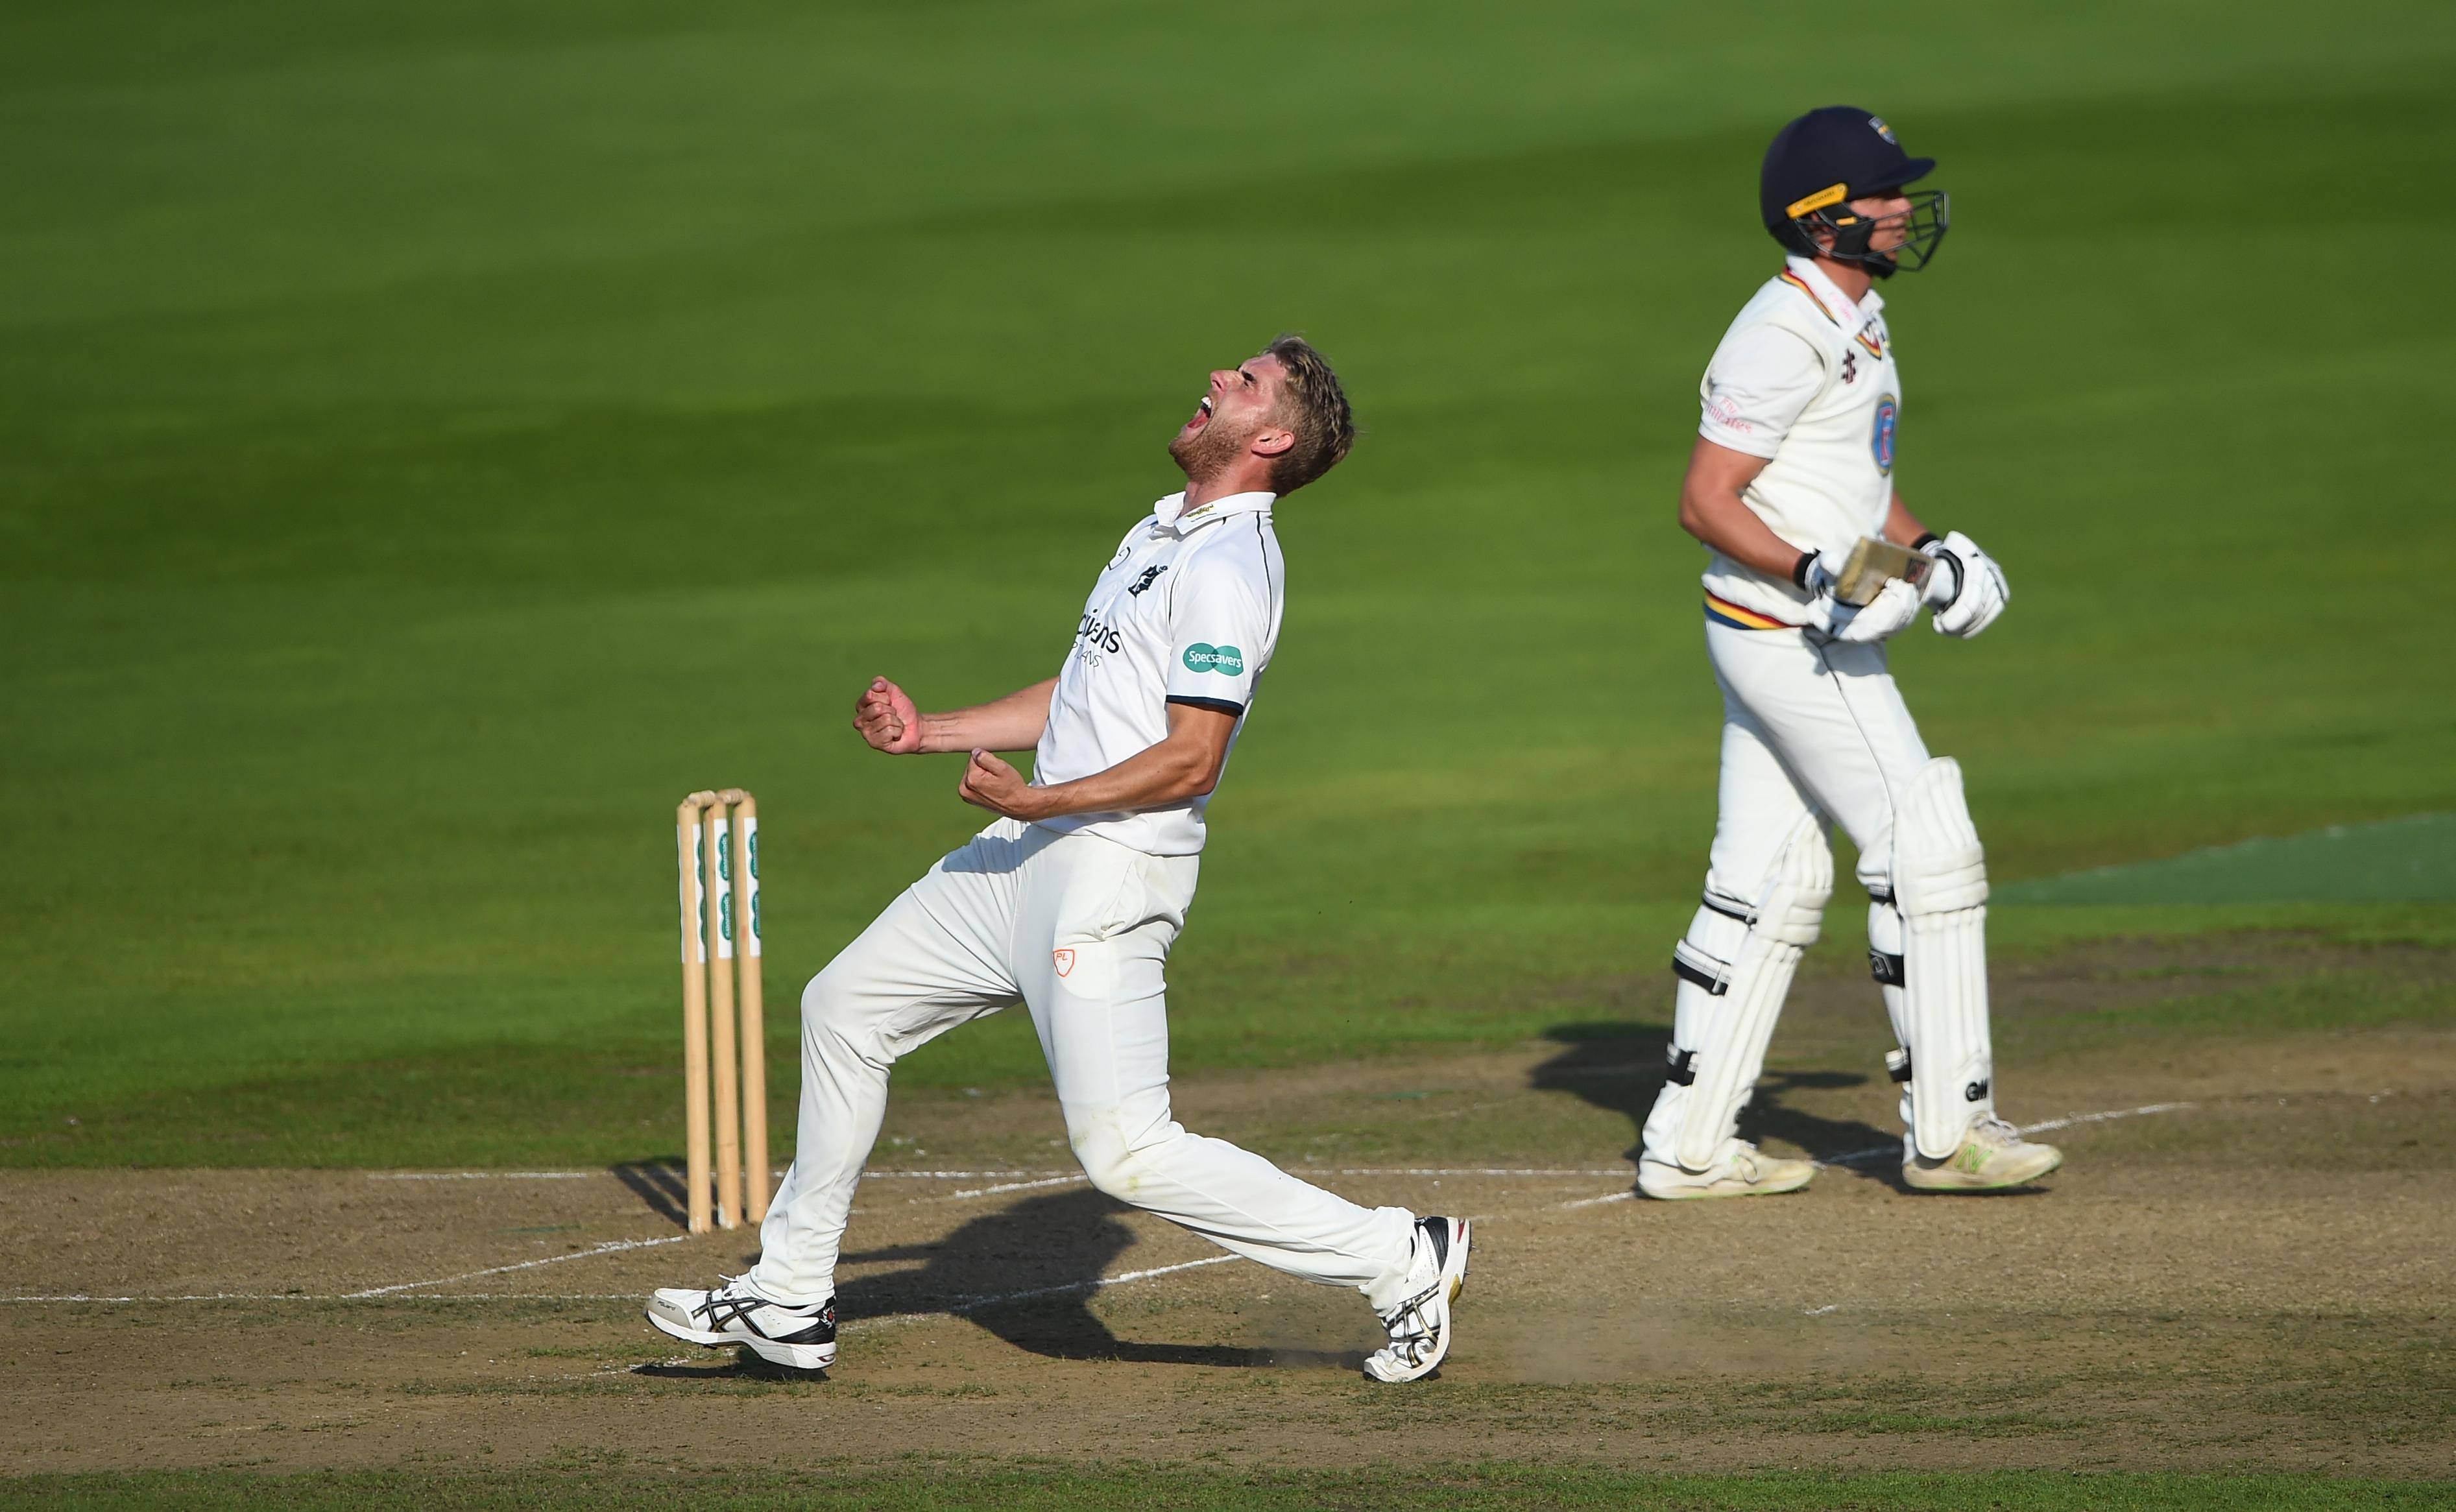 The Warwickshire paceman can bowl at 92mph